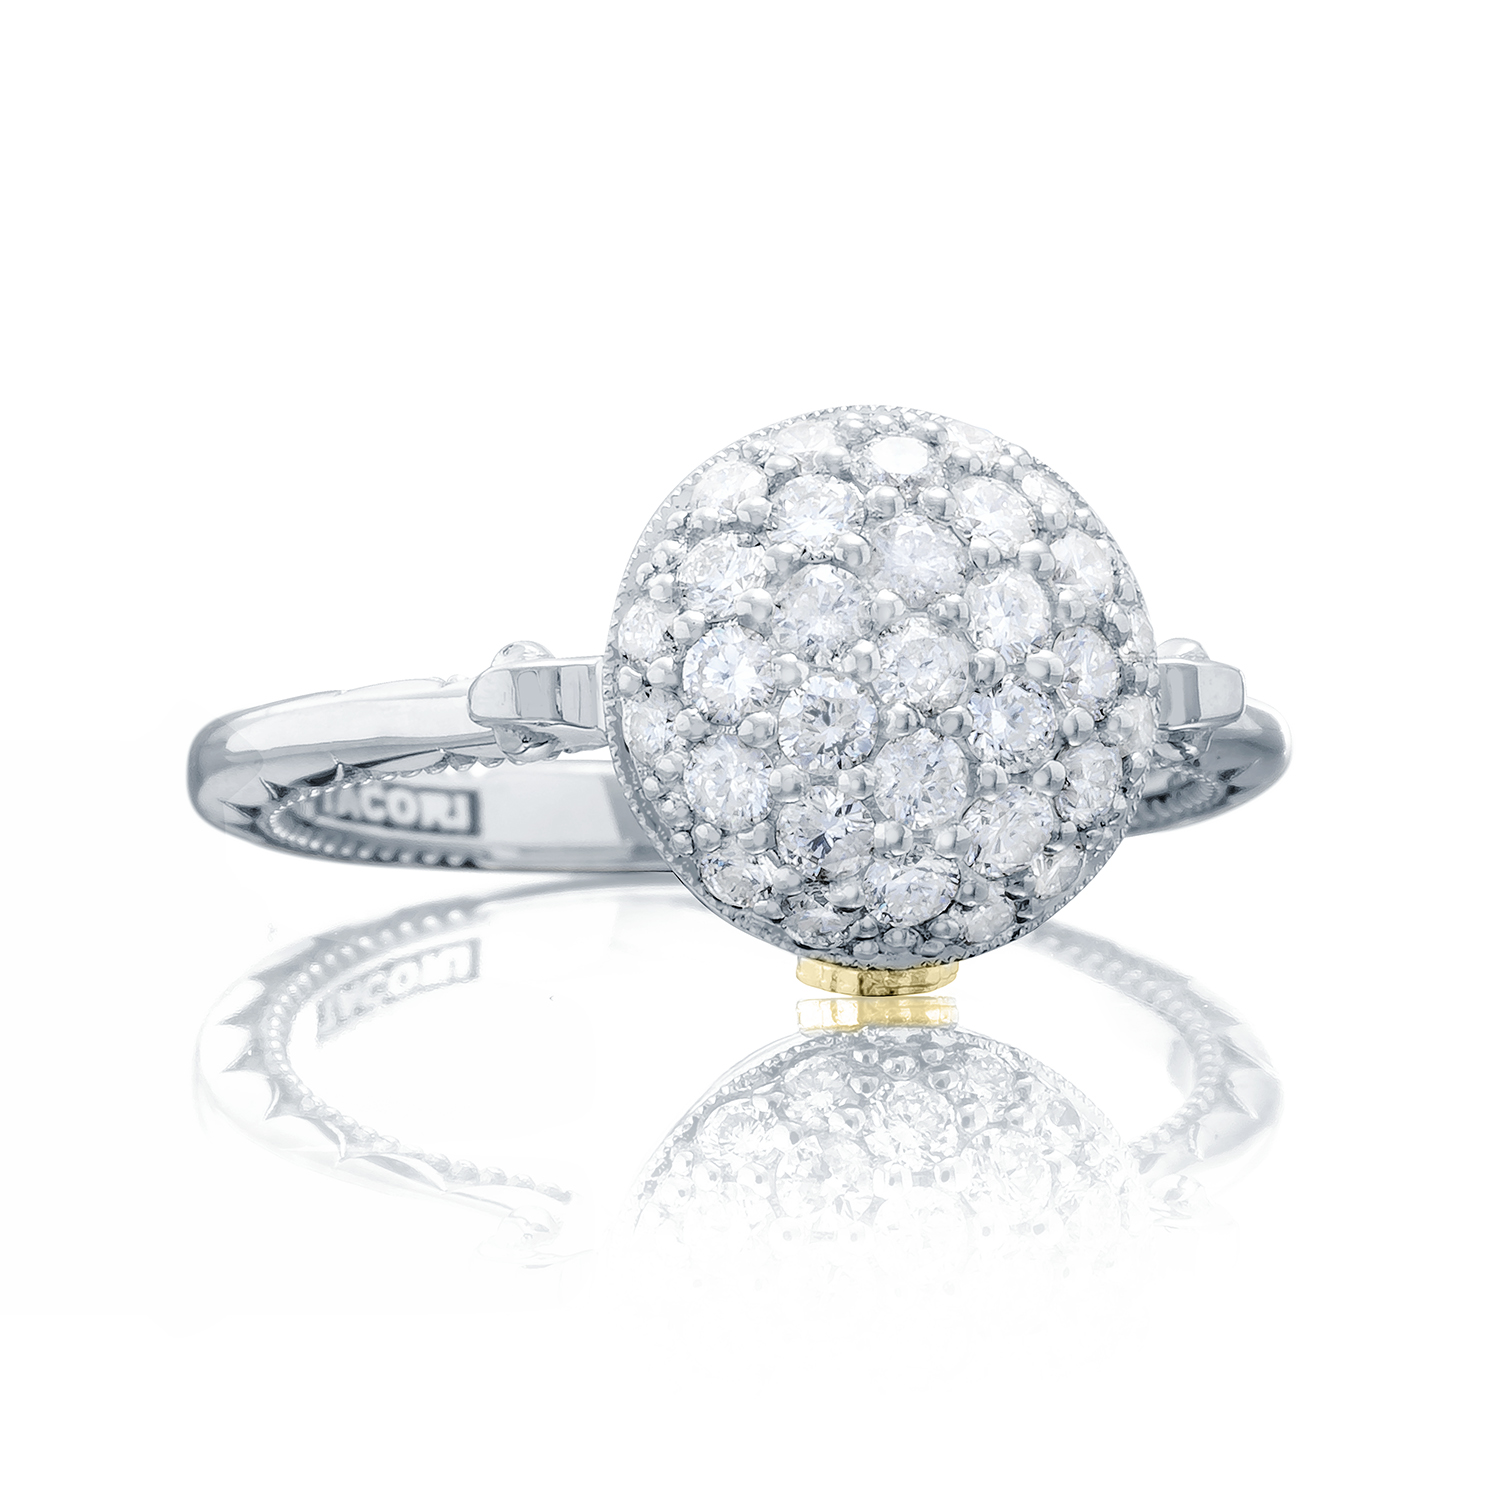 Tacori: Sterling Silver Sonoma Mist Bold Pave Dew Drop Fashion Ring With 0.62Tw Round Diamonds Ring Size: 7